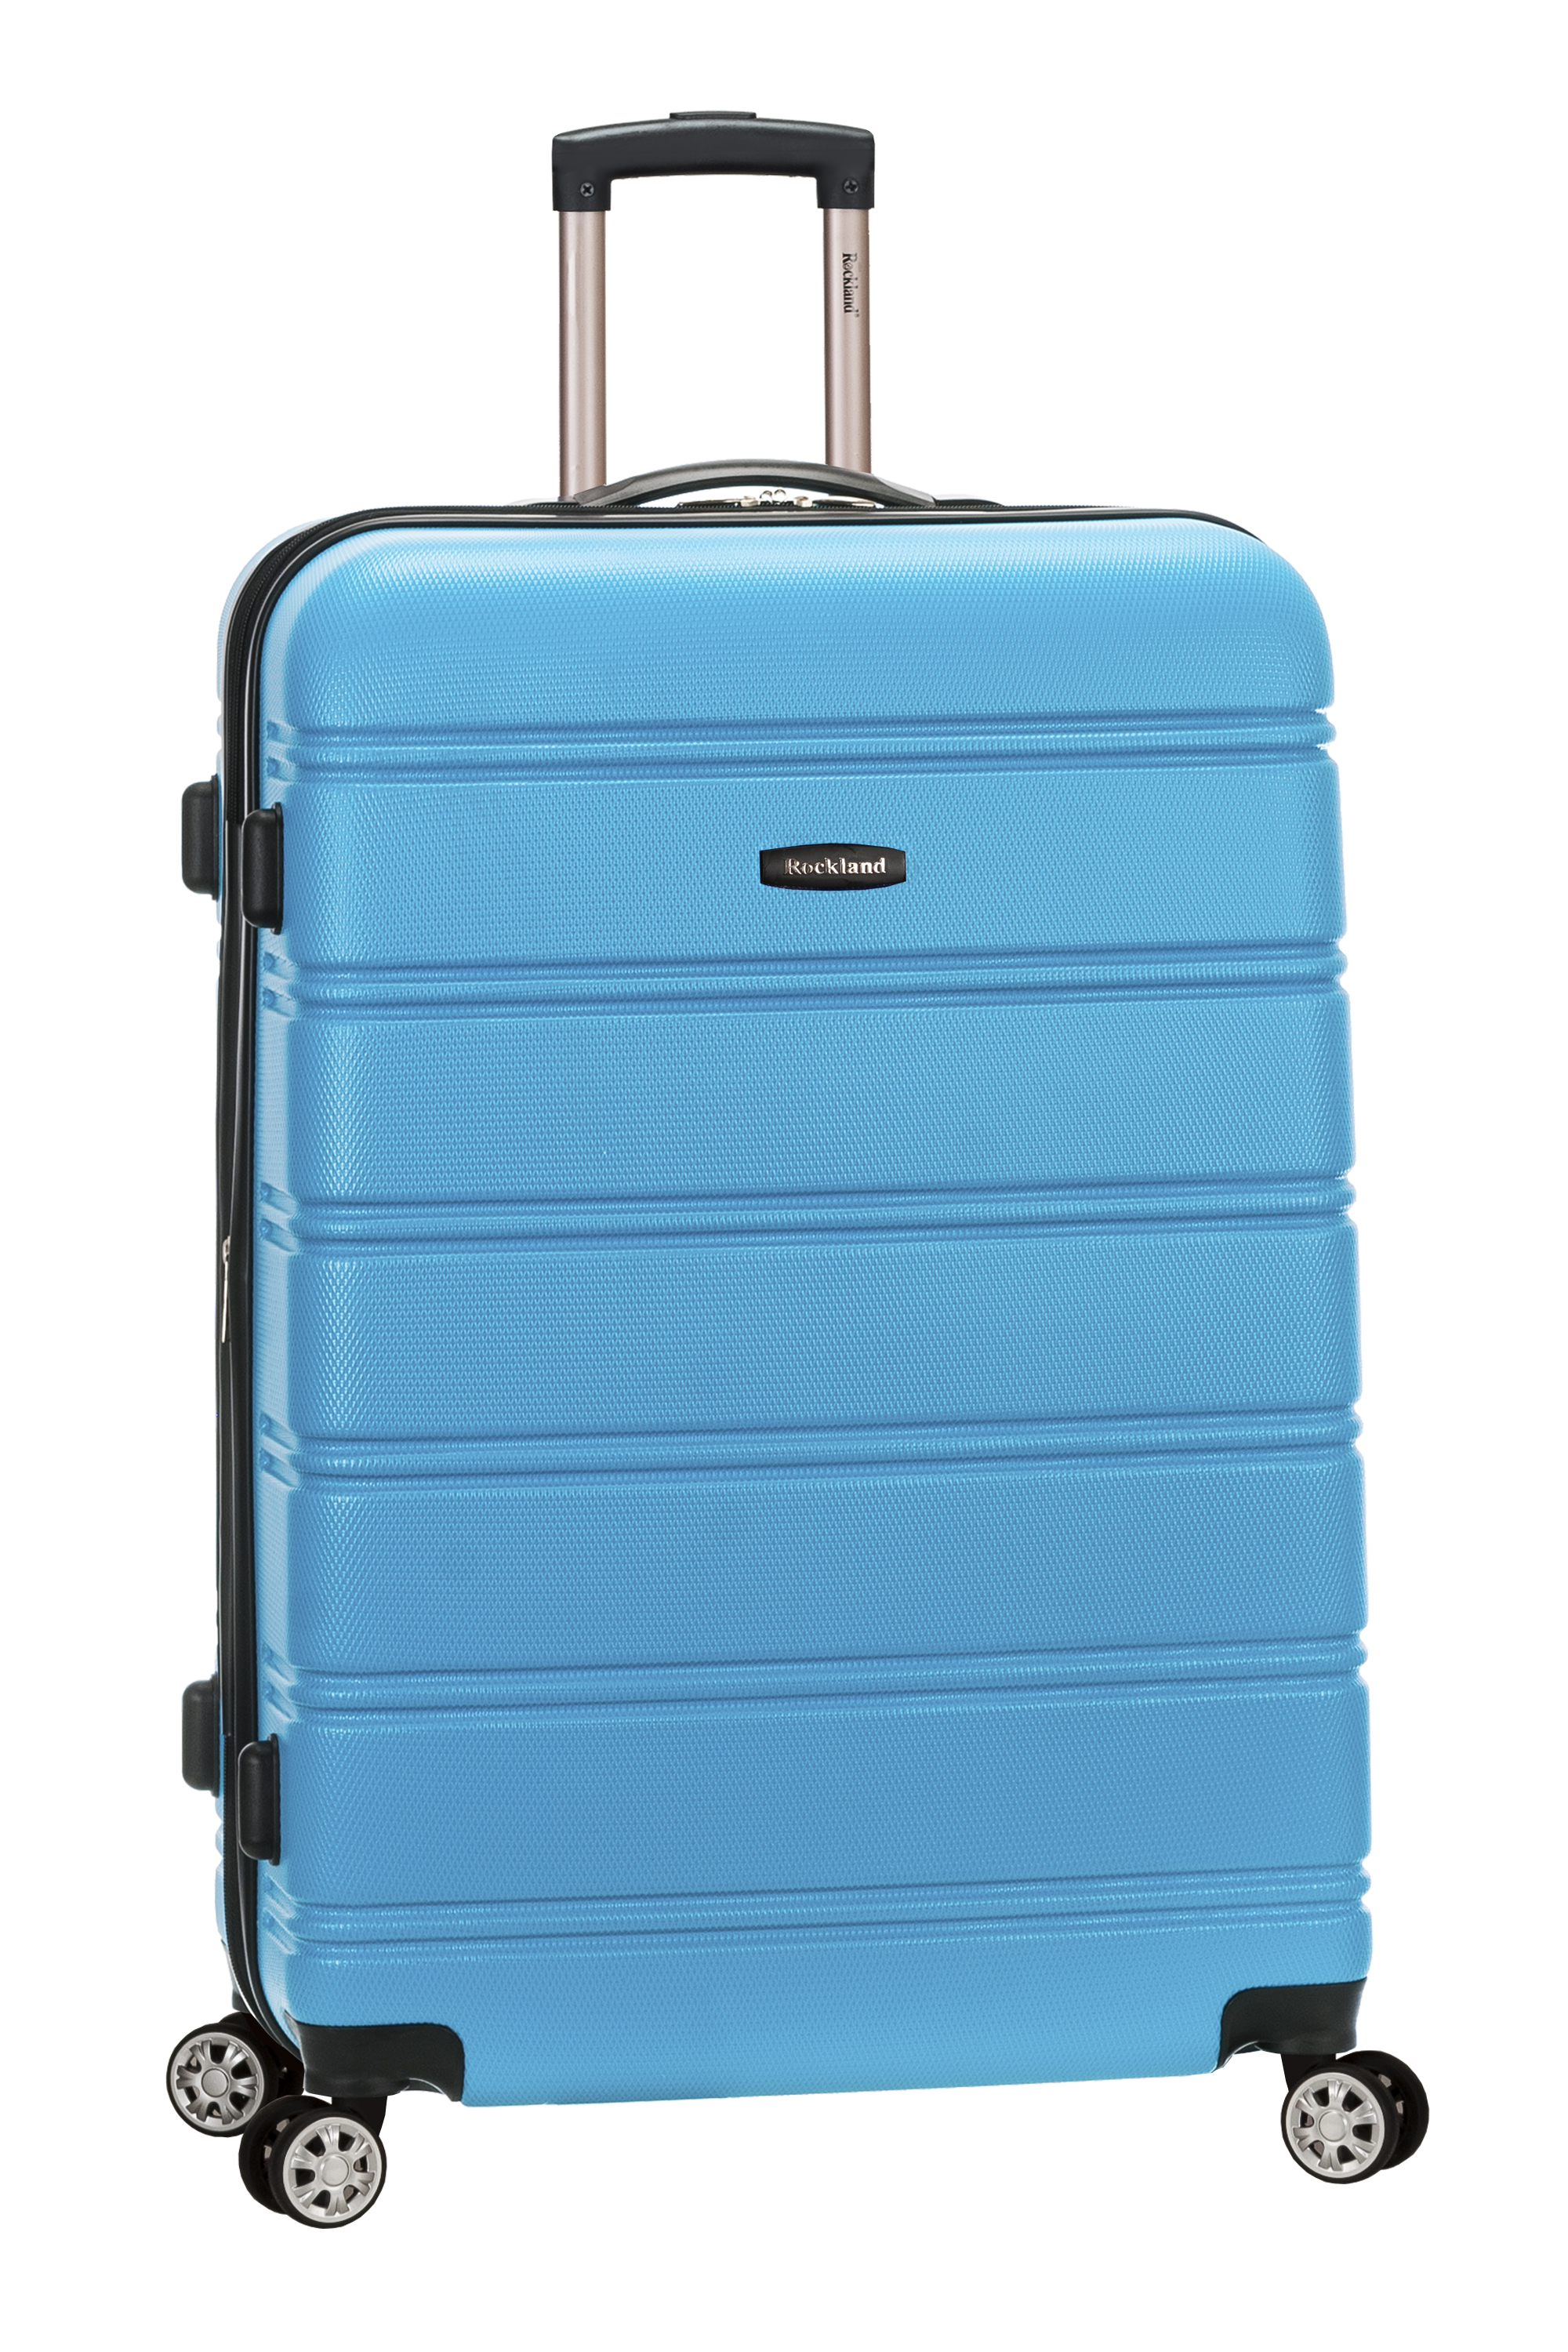 Travel Luggage Melbourne Rockland Luggage Melbourne 28 Quot Hard Sided Expandable Abs